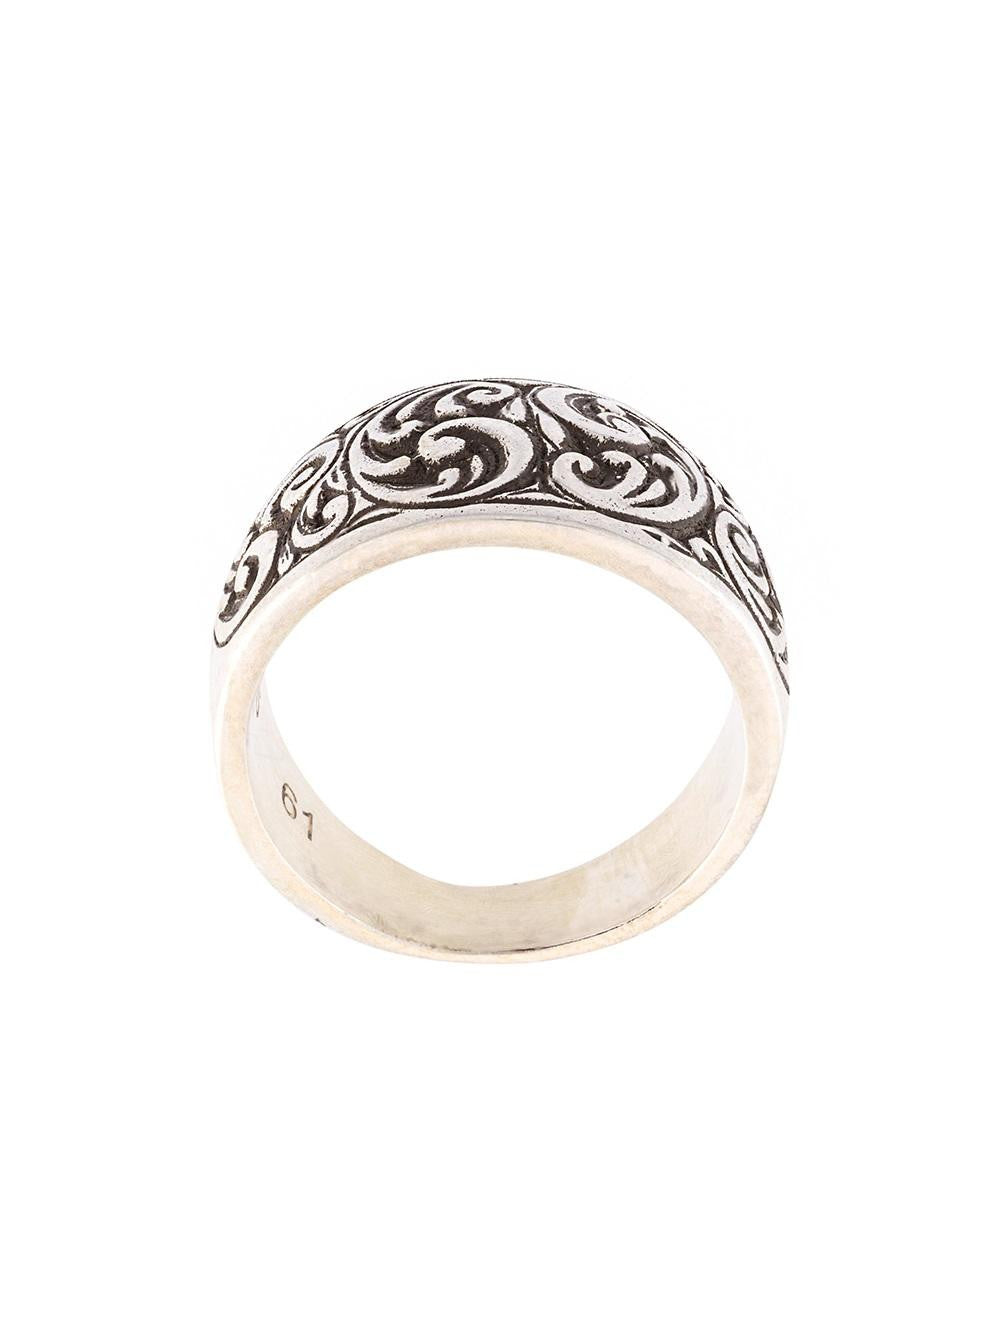 HENSON  Engraved Husk Ring - 1